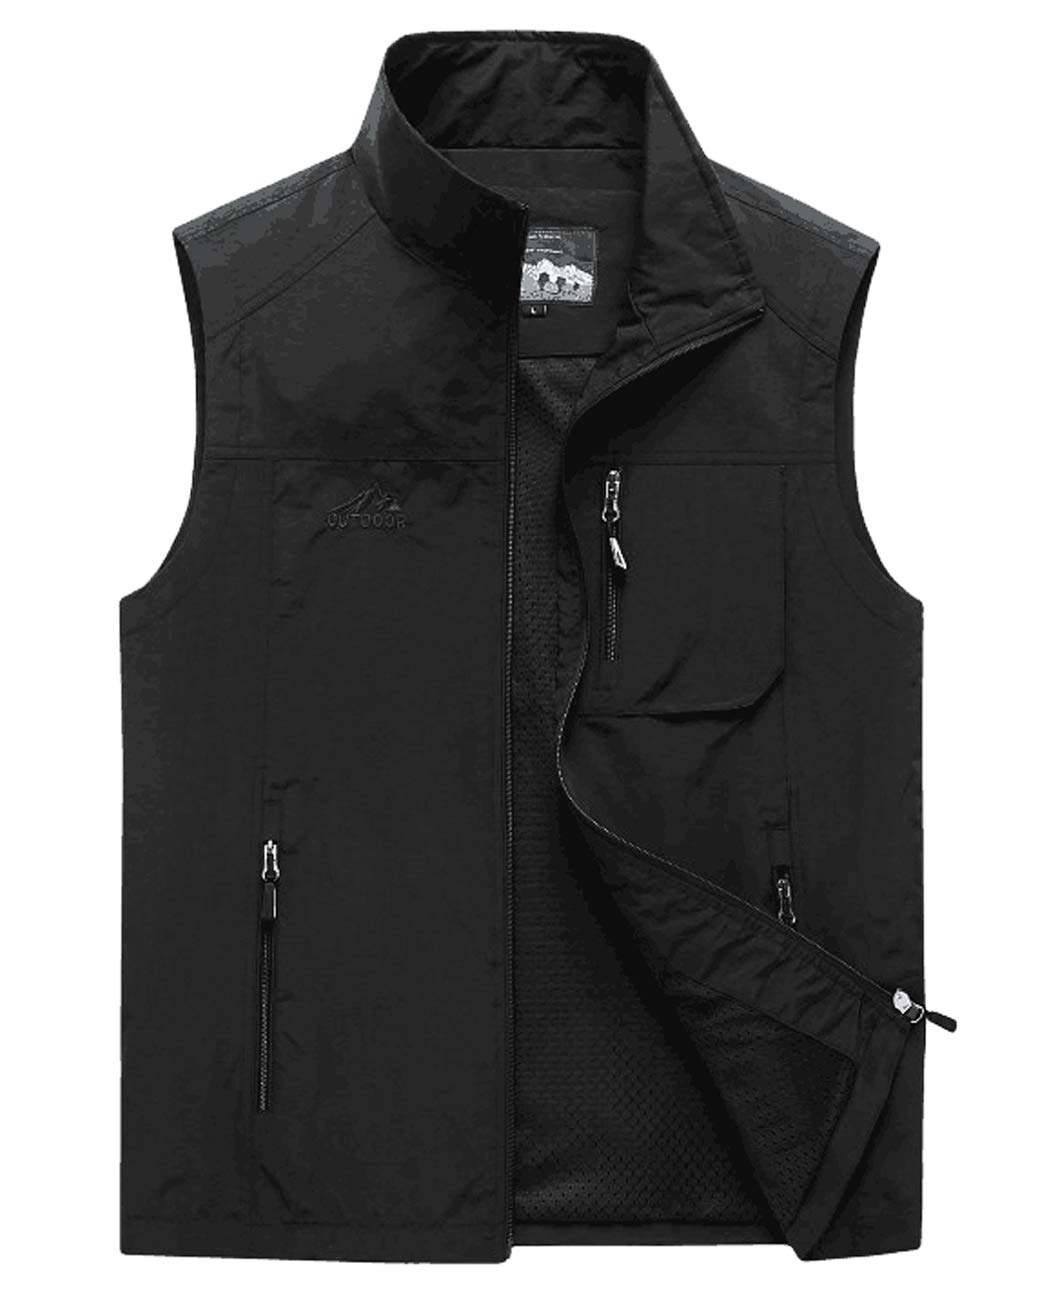 Hixiaohe Men's Casual Lightweight Outdoor Vest Work Fish Photo Travel Vest